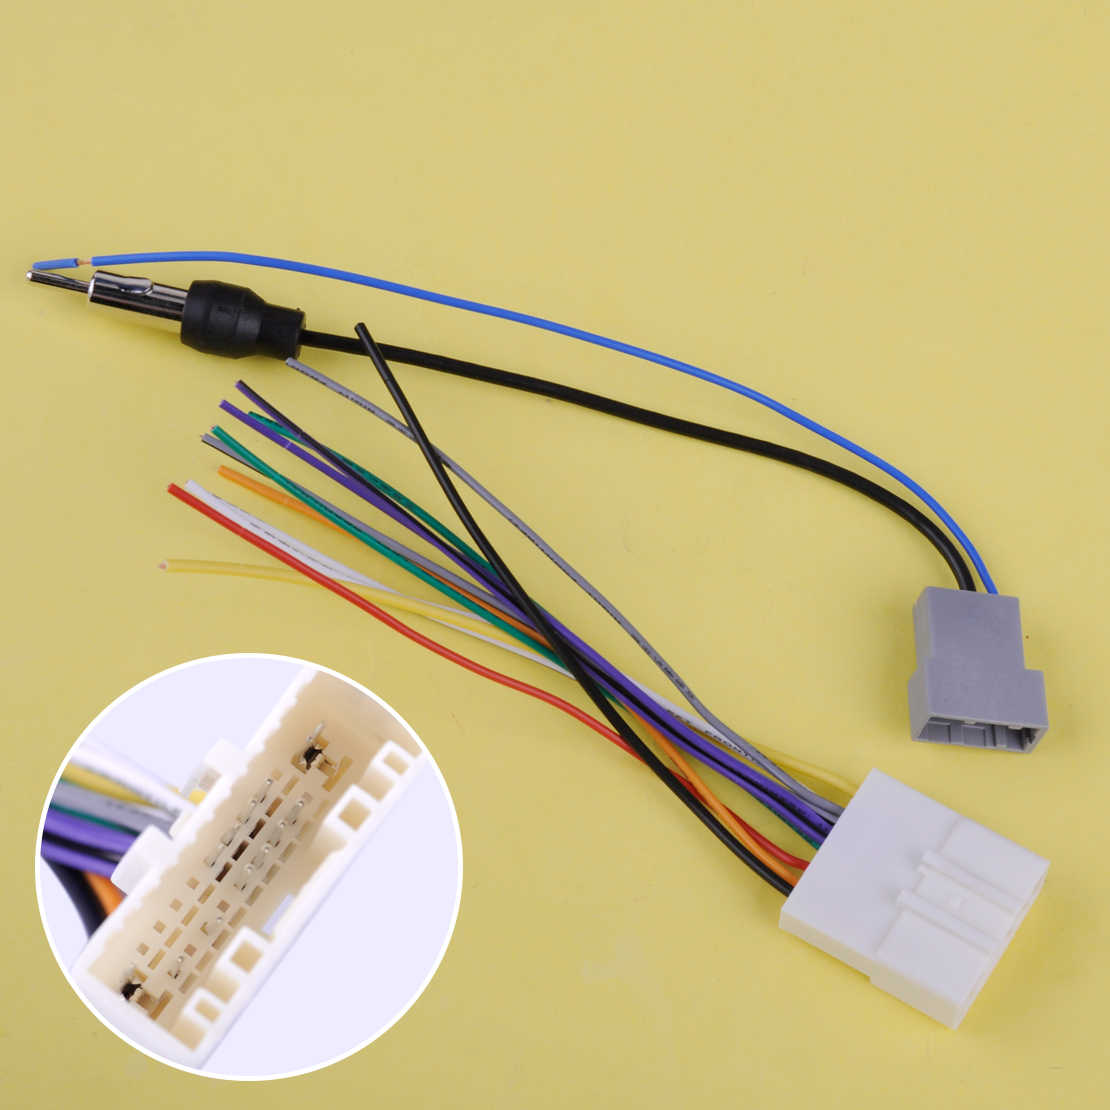 DWCX Car DVD Radio Install Stereo Wire Harness Cable Plugs Antenna Nissan An Dvd Wiring Harness on